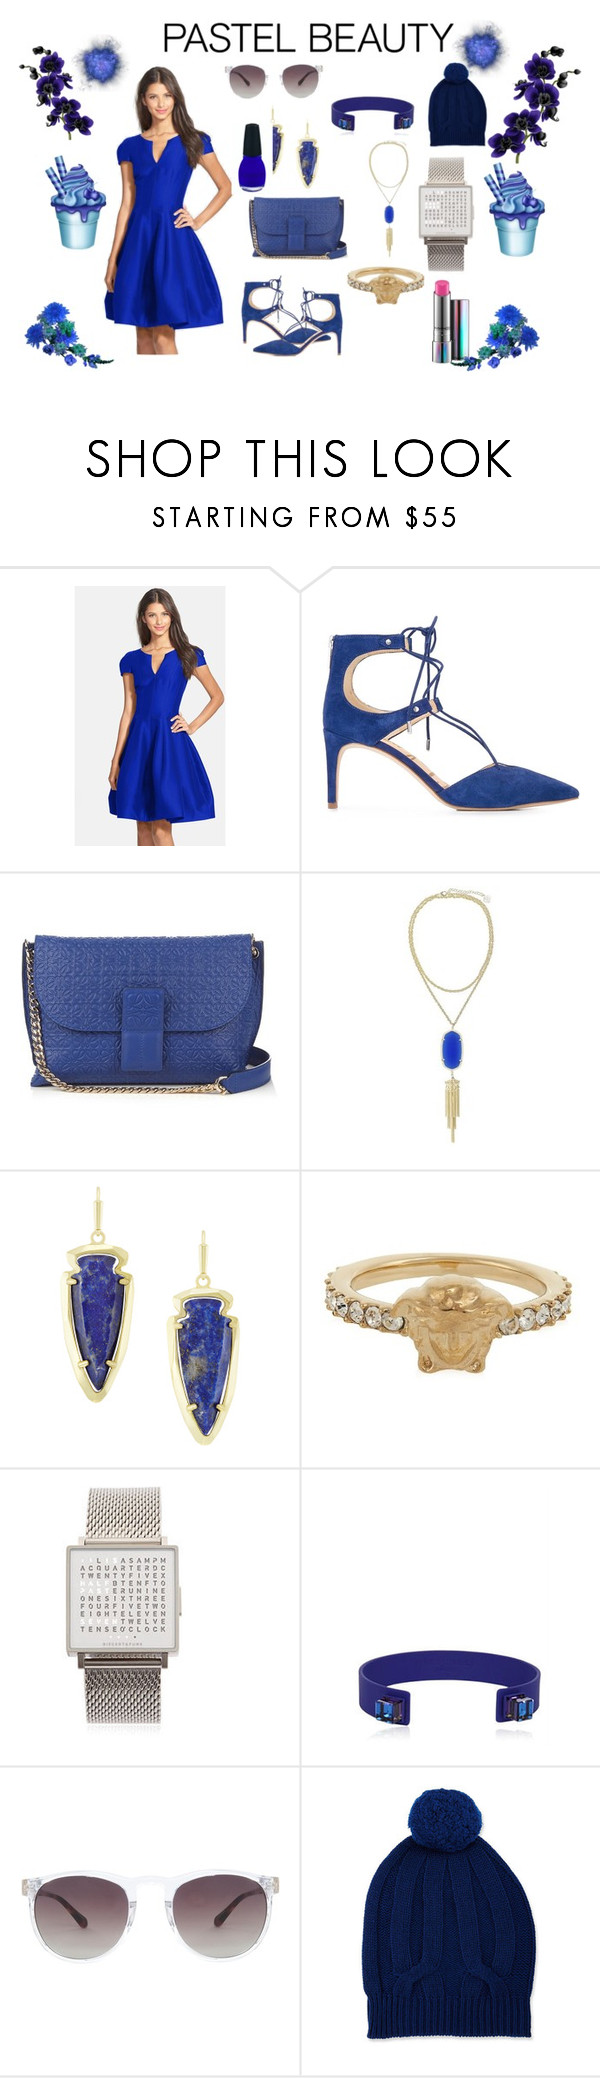 """Blue beauty"" by jamuna-kaalla ❤ liked on Polyvore featuring Halston Heritage, Sam Edelman, Loewe, Kendra Scott, Versace, QLOCKTWO, HIRSCHELL, Linda Farrow, Neiman Marcus and vintage"